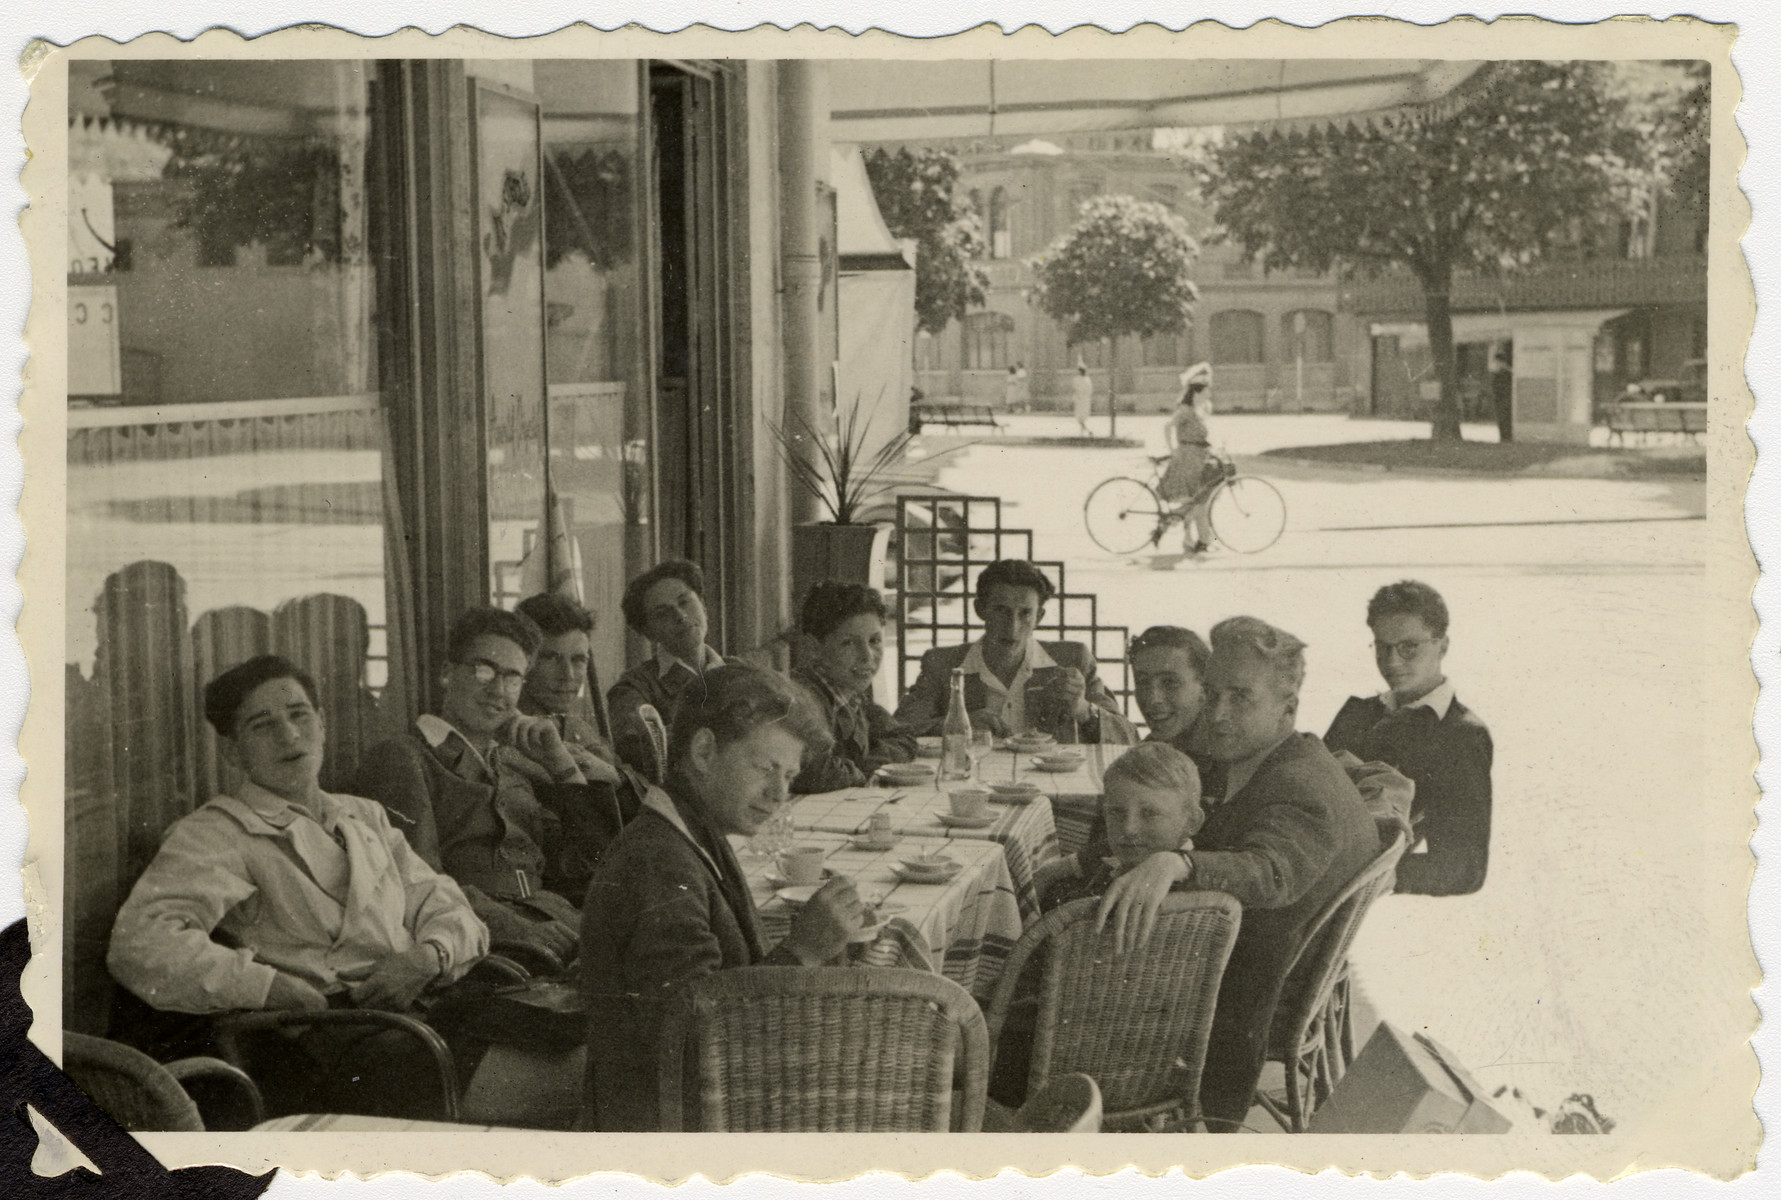 Teenagers from Les Murailles children's home eat a final ice cream in an outdoor cafe in Geneva prior to leaving Switzerland on Youth Aliya.  Pictured on the left are Otto Weiner, Kurt Frost, Ludwig Mayer and David (Tuvia) Bregman.  Michel Ashkenazi is at the far  head of the table, and the boys' teacher, Mr. Pugatz is seated in the middle of the right side.